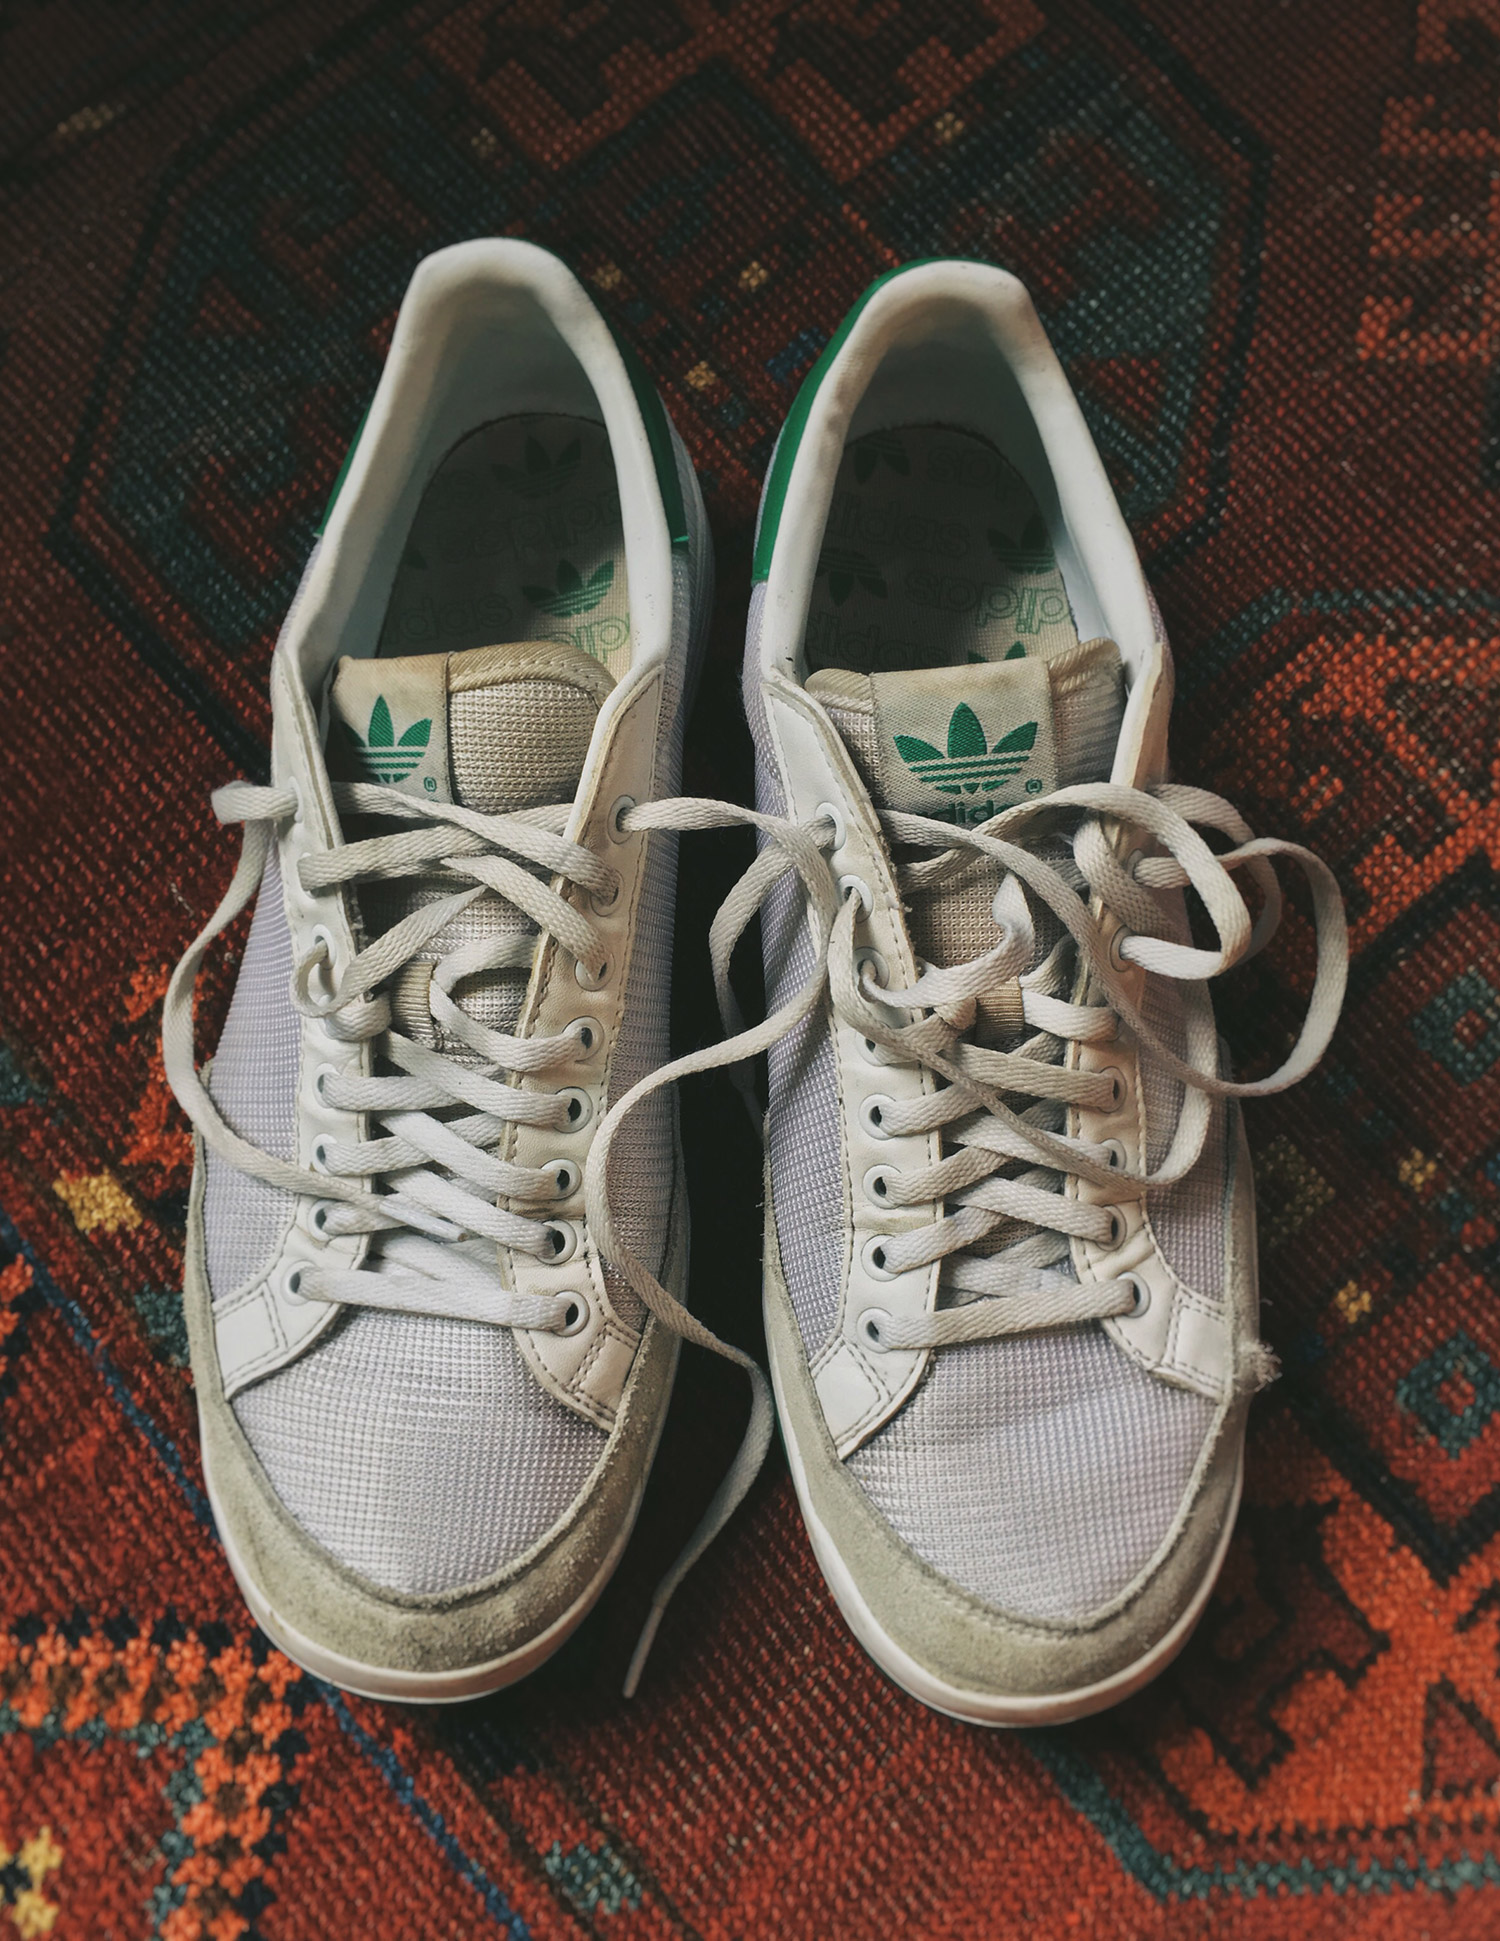 My Adidas Rod Lavers, one year old.